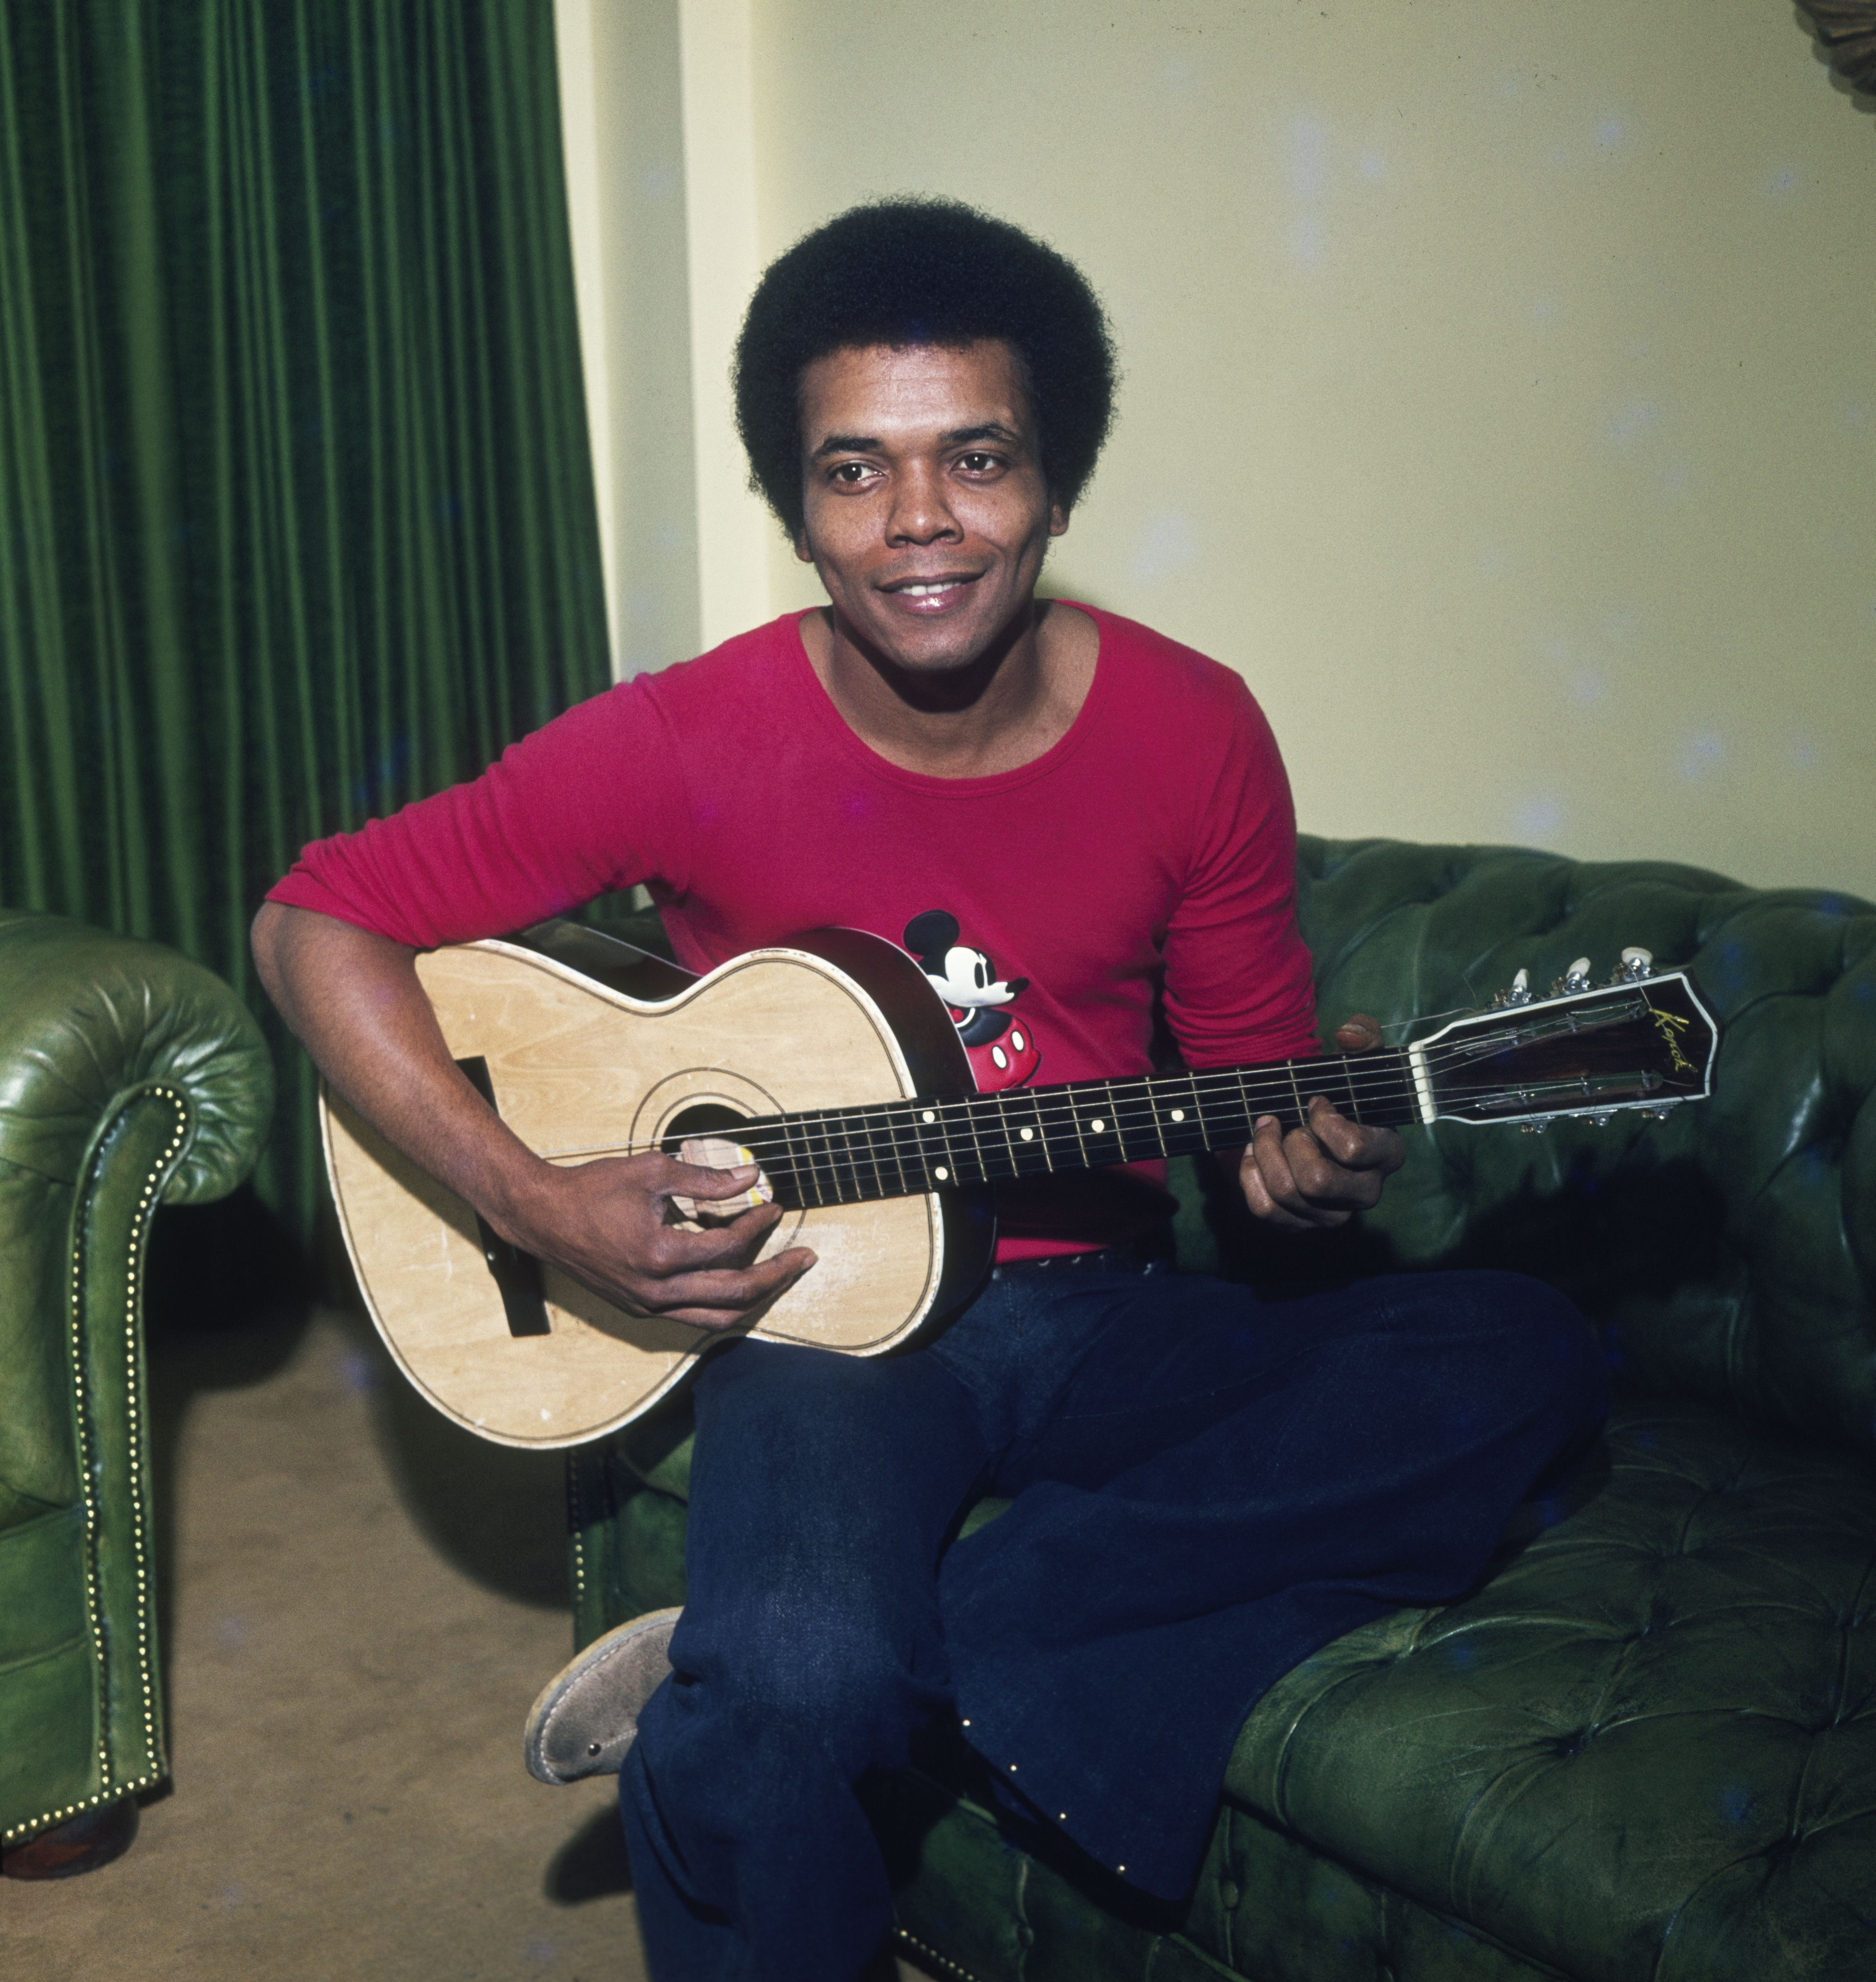 """Johnny Nash is an American pop singer-songwriter, best known in the US for his 1972 comeback hit, """"I Can See Clearly Now"""". He was also the first non-Jamaican to record reggae music on January 01, 1974 